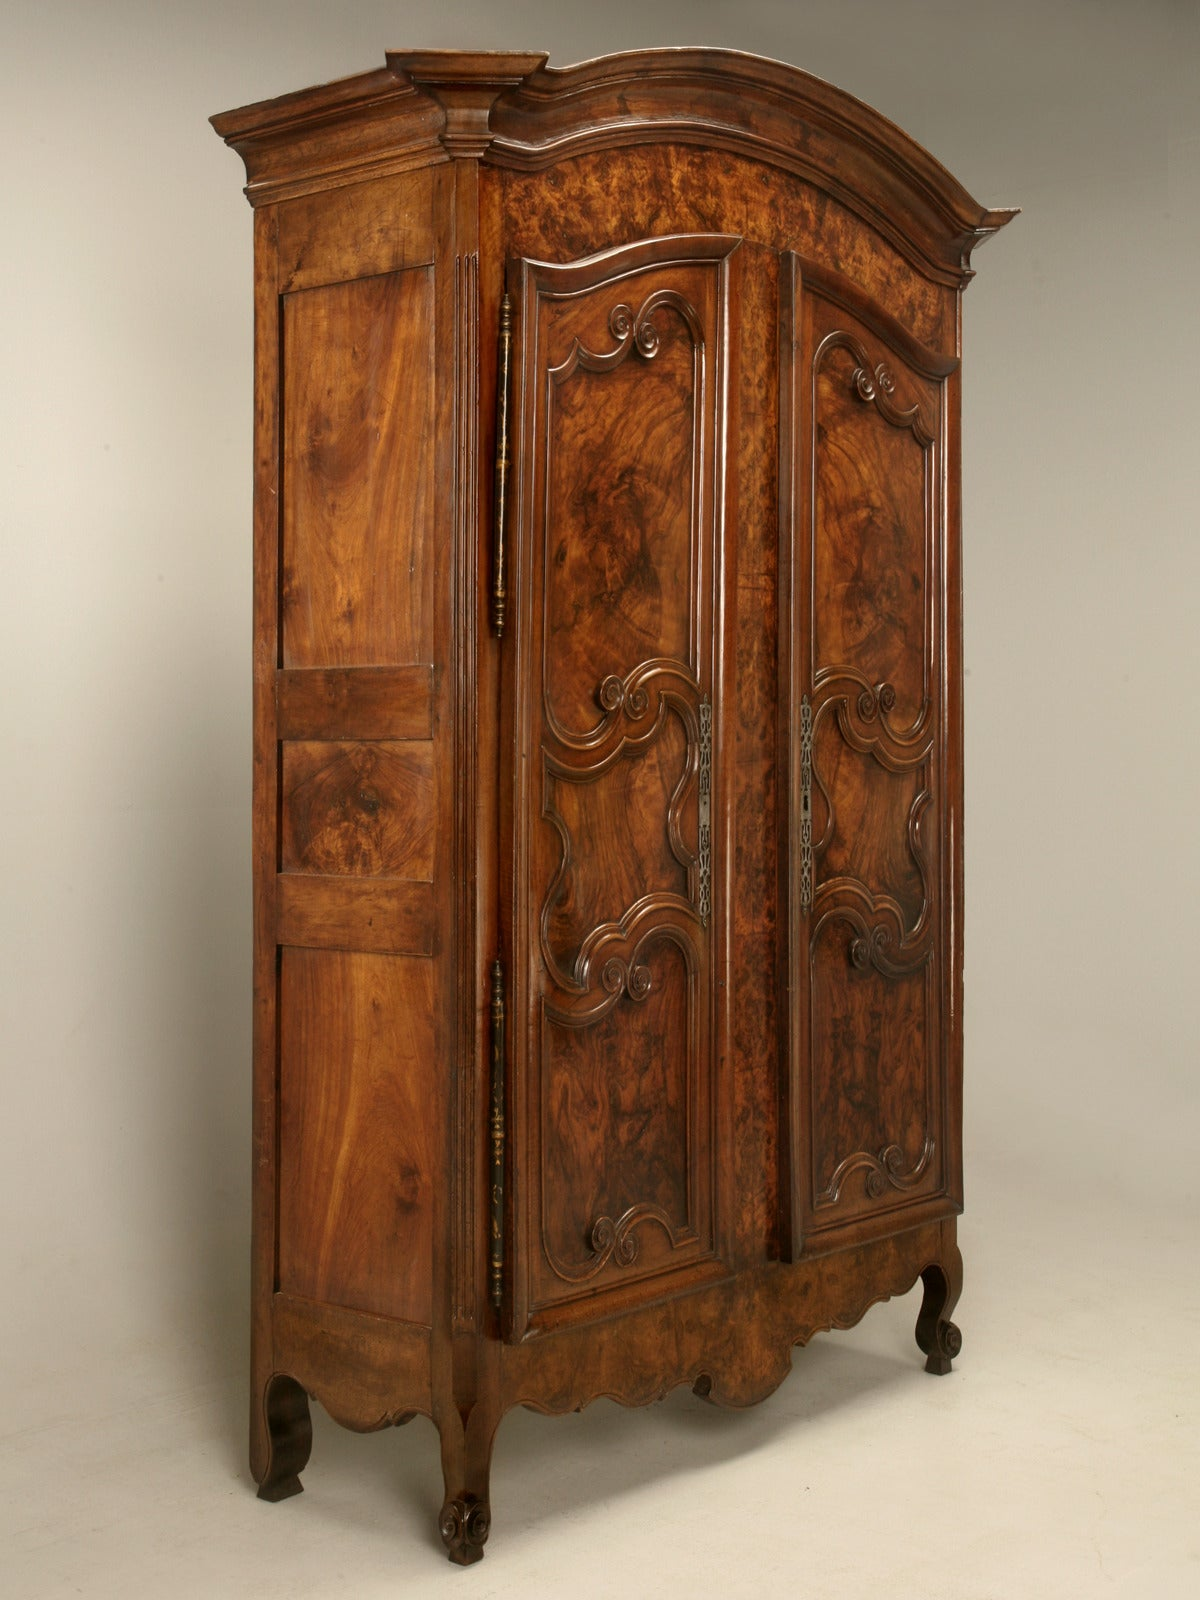 armoire french burl walnut in the style of louis xv for. Black Bedroom Furniture Sets. Home Design Ideas